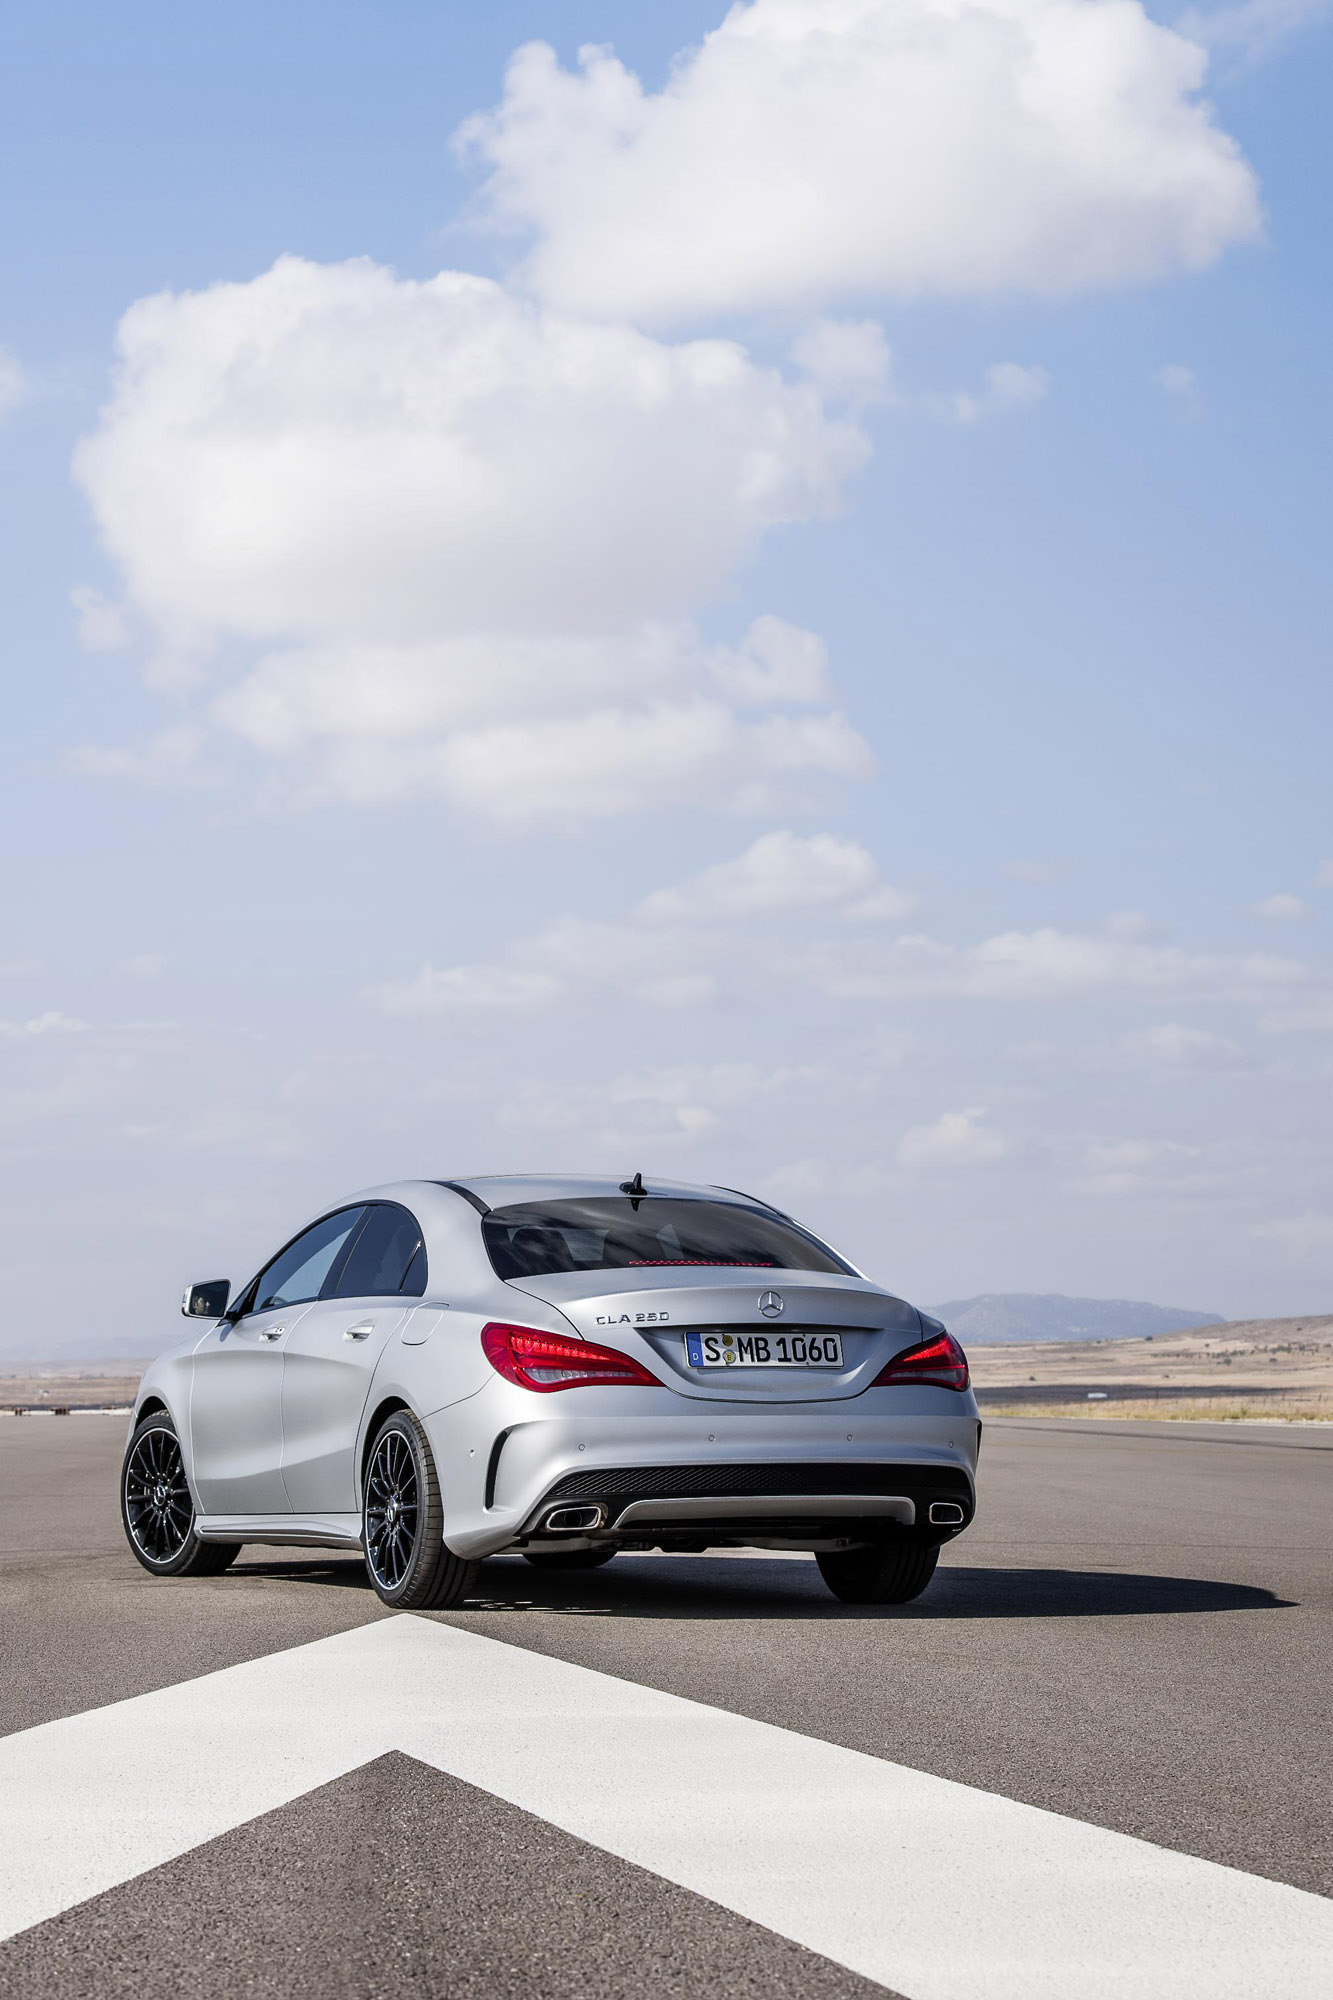 Mercedes benz establishes new segment with cla class for Mercedes benz cla 350